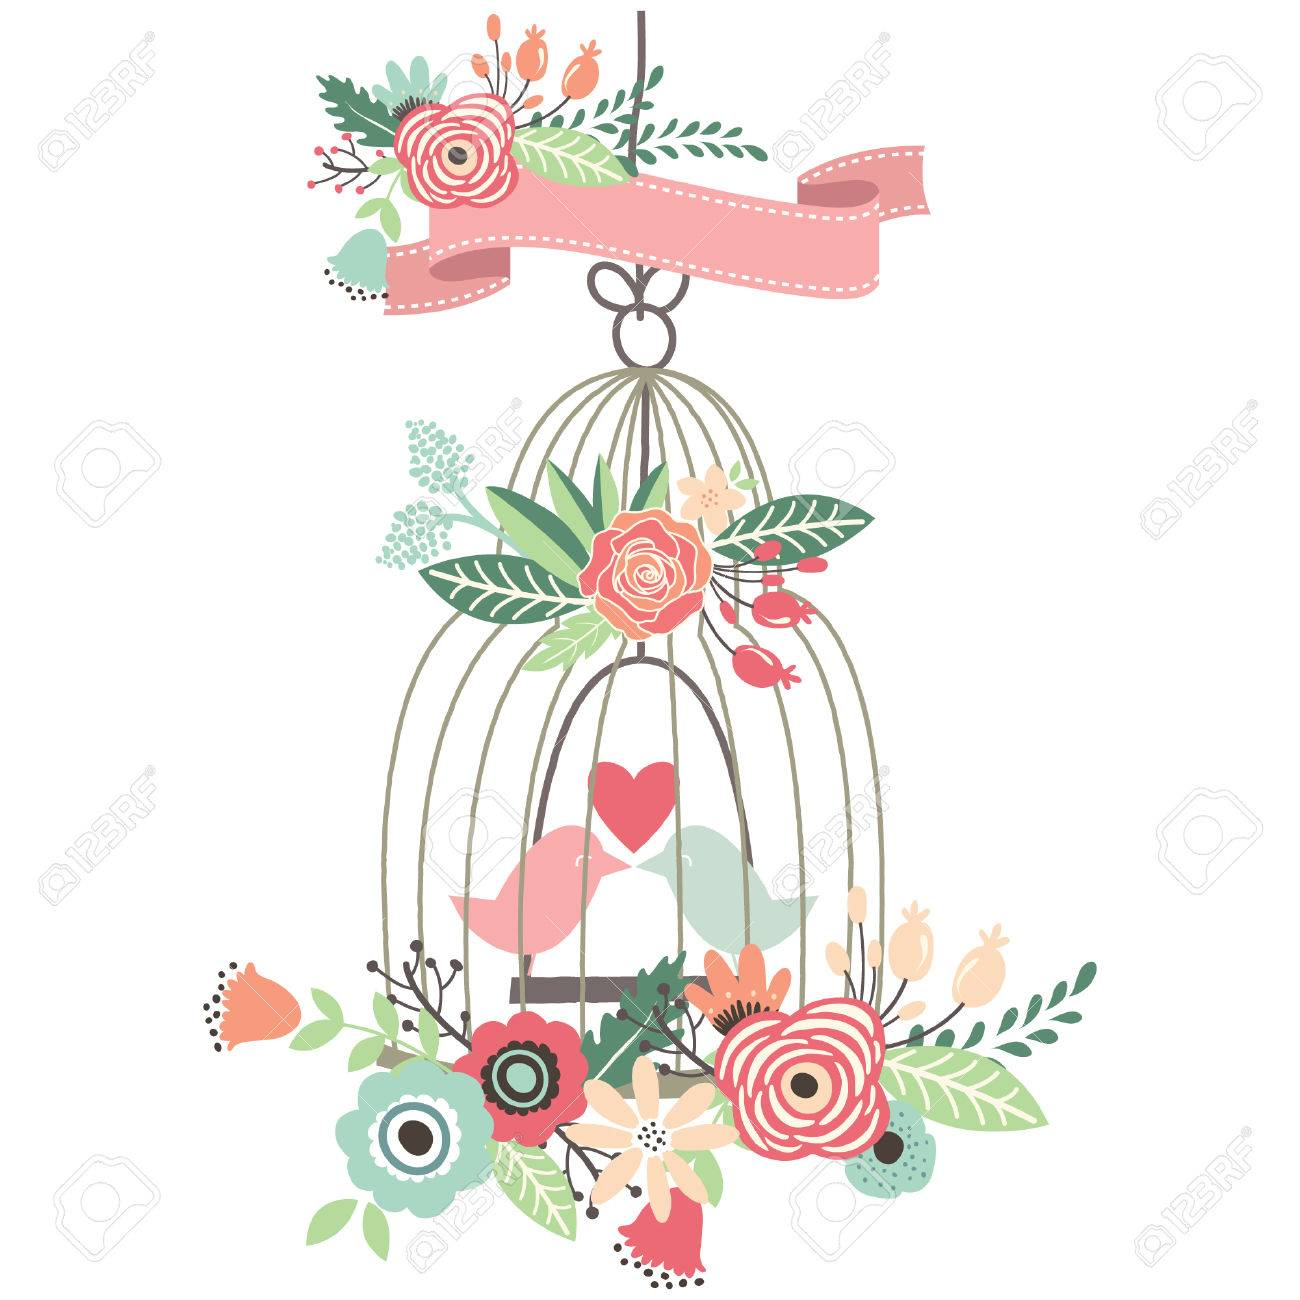 Vintage Wedding Floral Birdcage Royalty Free Cliparts Vectors